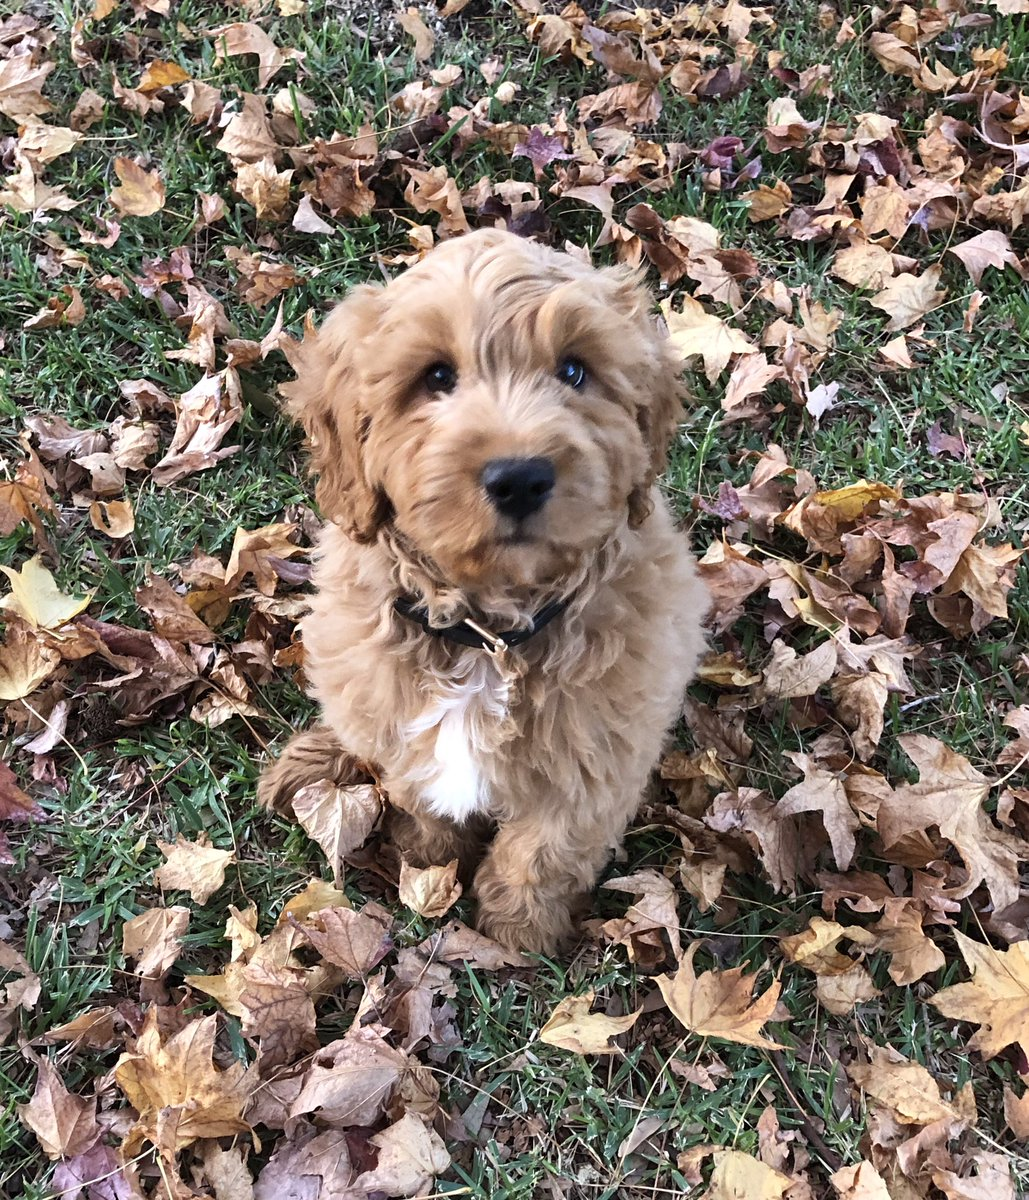 Dudley, soon to visit LPS and to be trained as a companion dog to support the emotional wellbeing of our students. <br>http://pic.twitter.com/aUv47M8p41